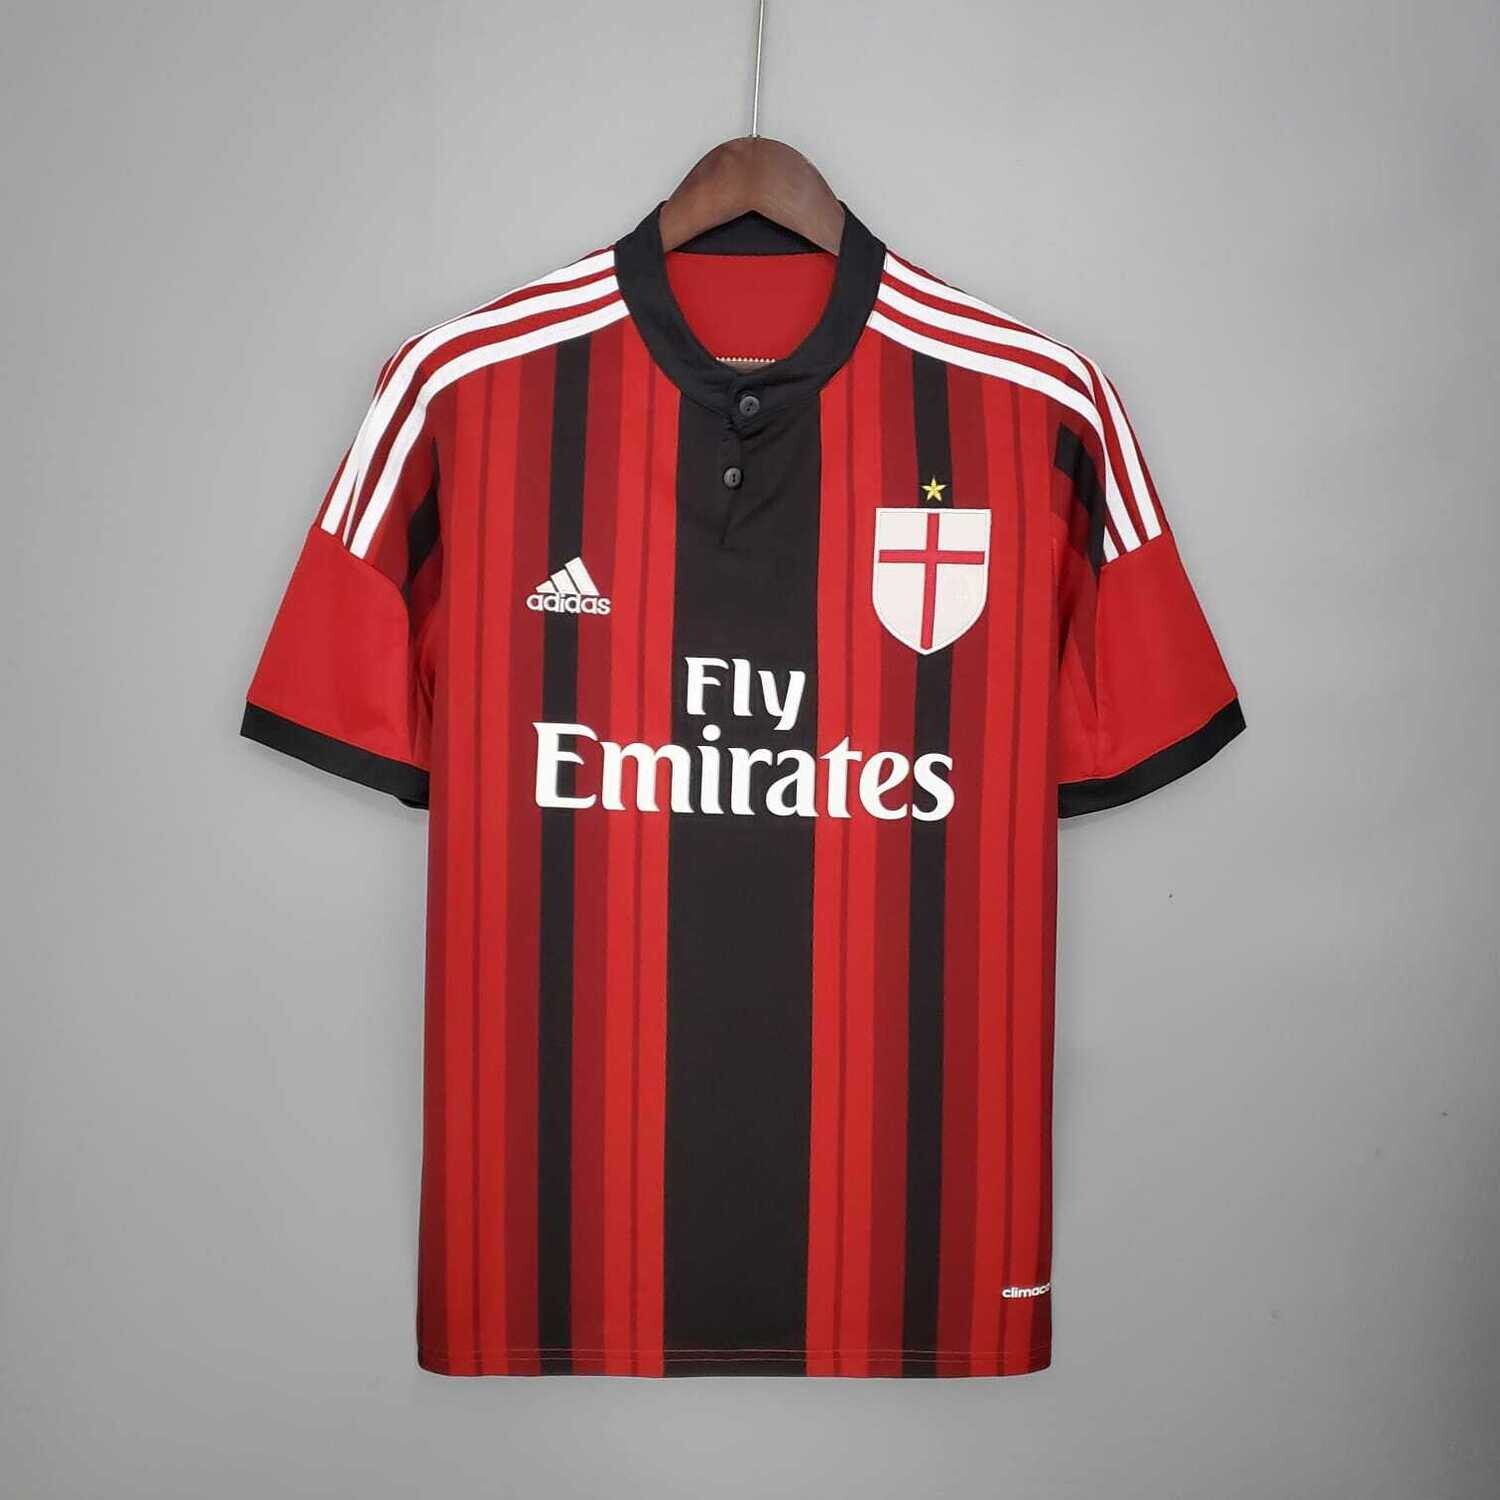 AC Milan 2014-15 Home Jersey [Pre-paid Only]